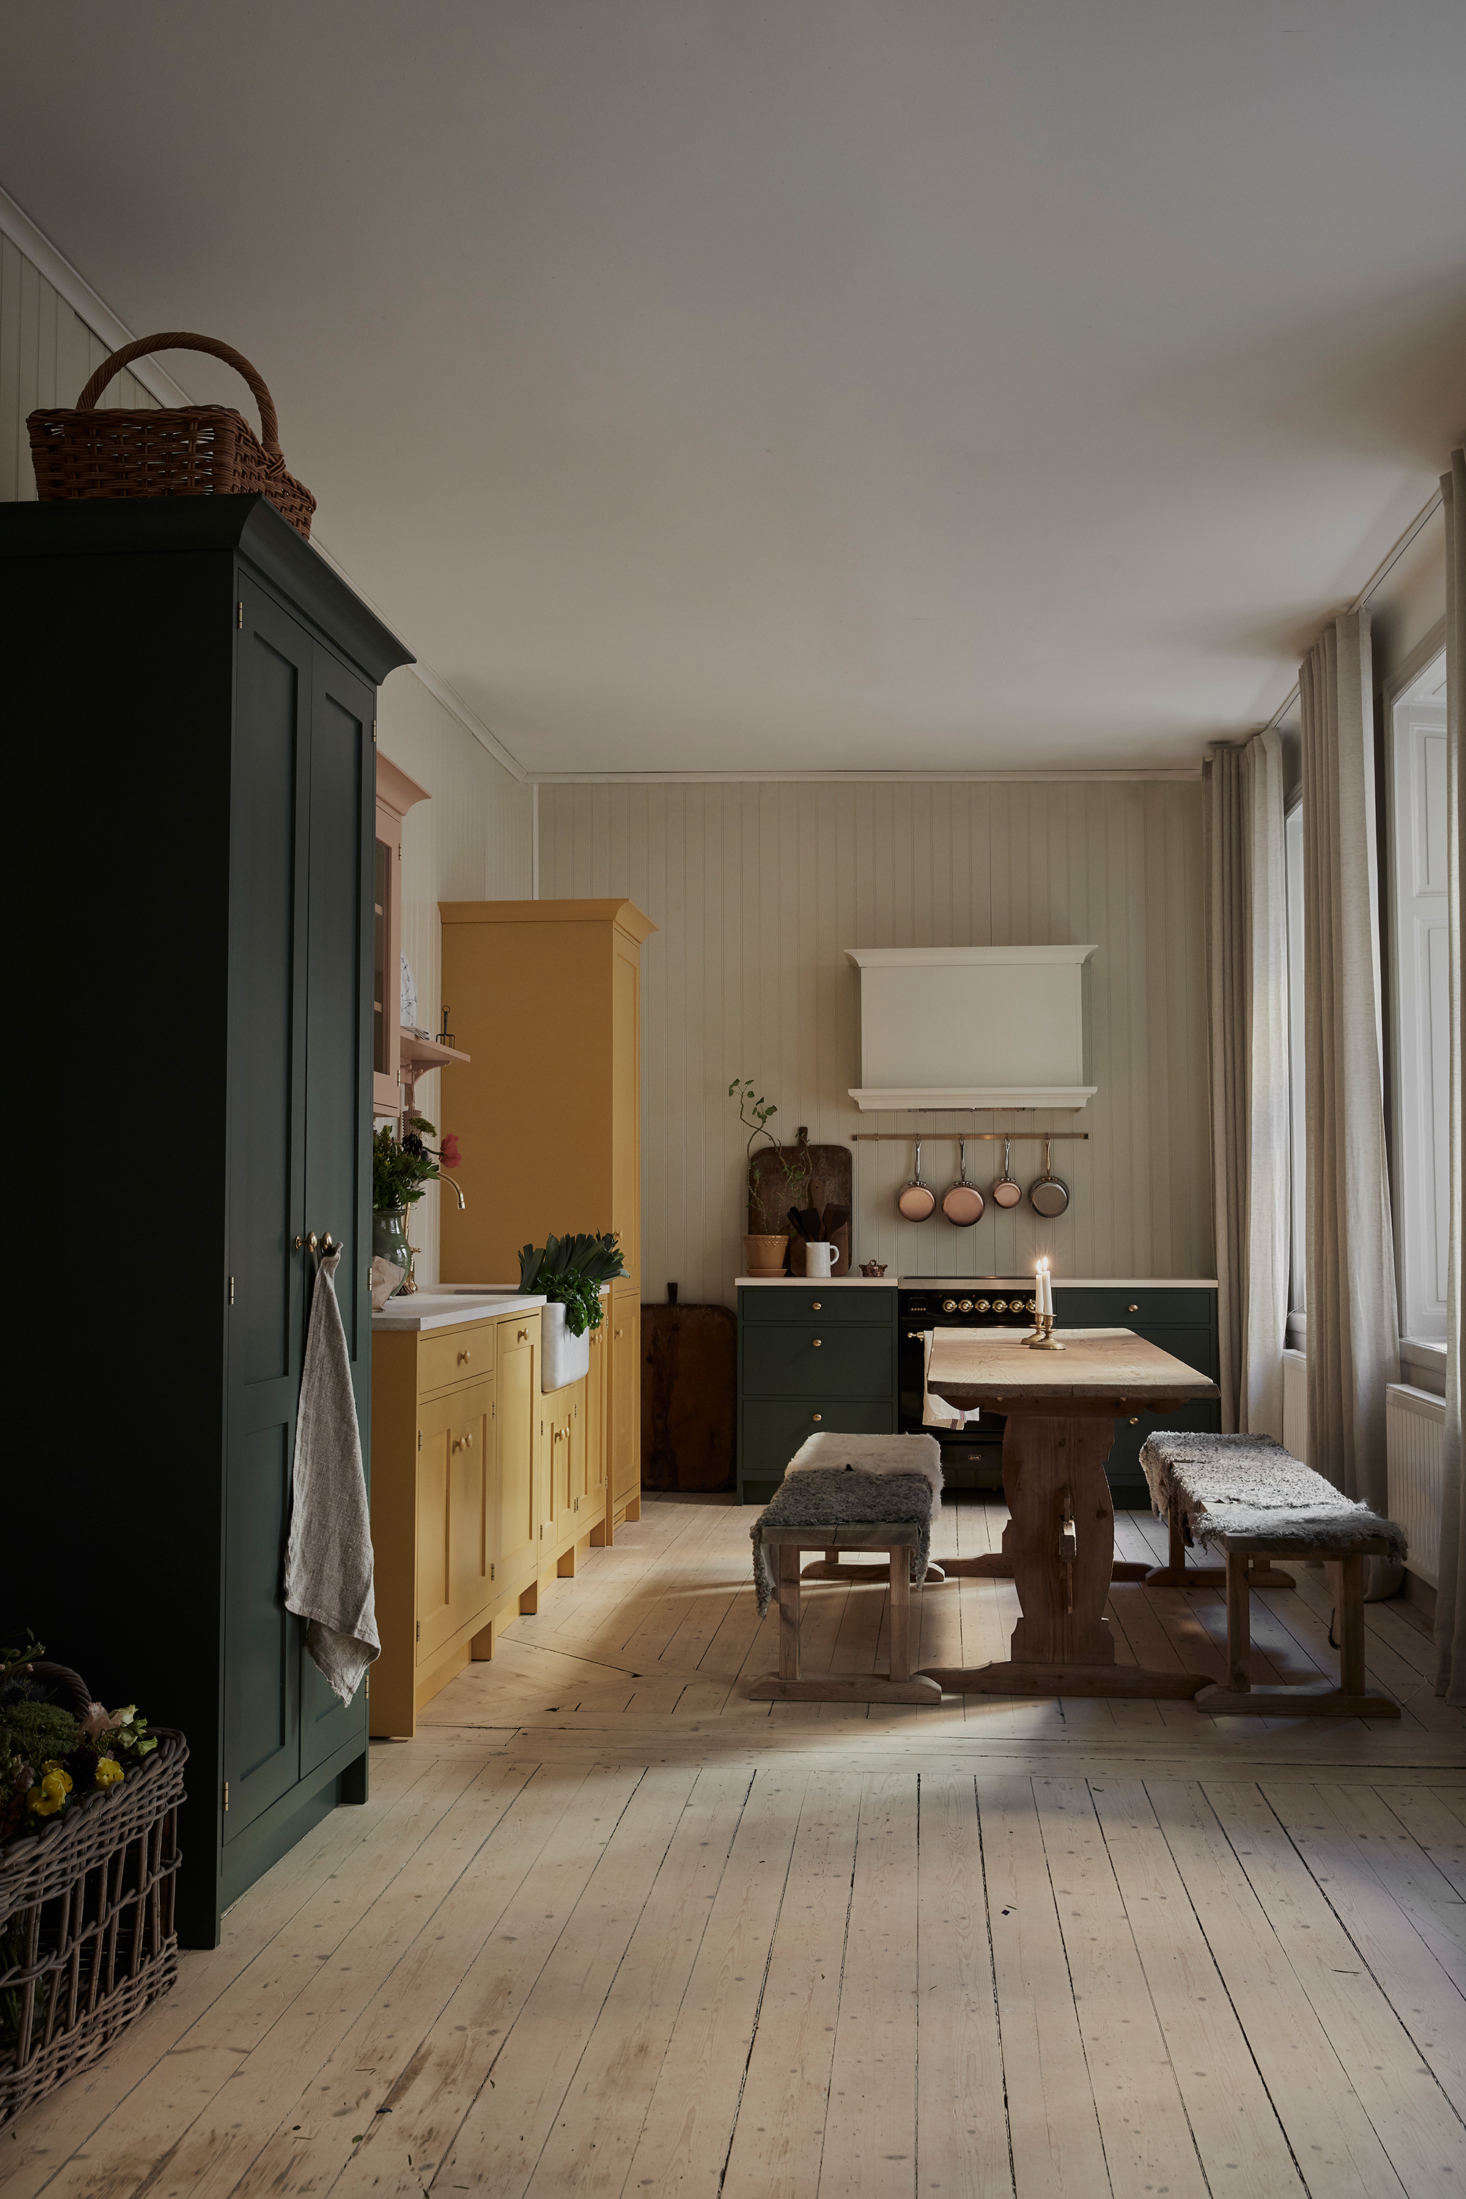 Working with the Carl Larsson foundation, Cupboards & Goods developed a limited edition color collection called Ett Hem (Swedish for &#8